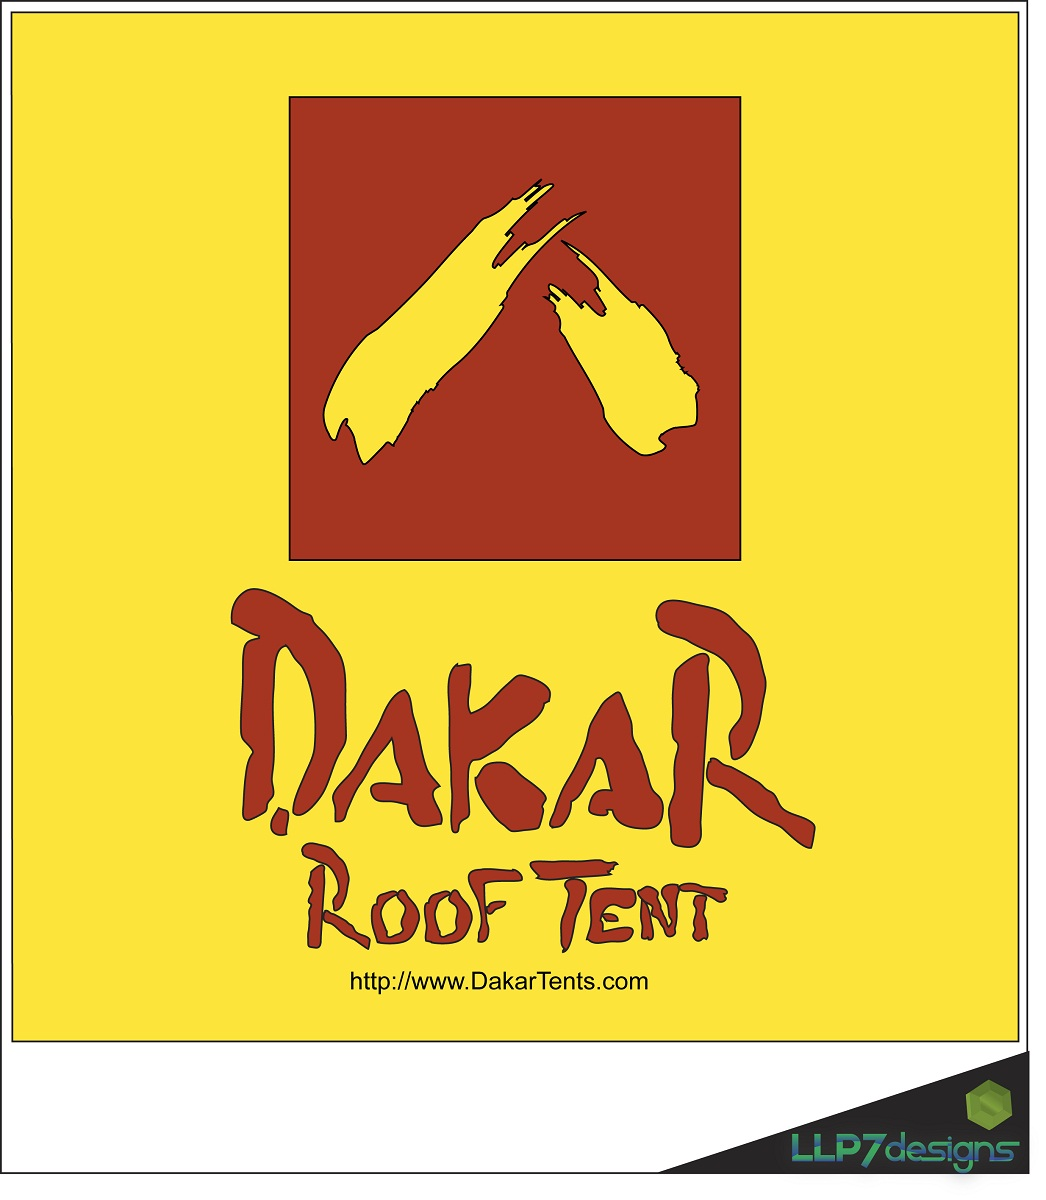 Logo Design by LLP7 - Entry No. 54 in the Logo Design Contest Dakar Roof Tents.